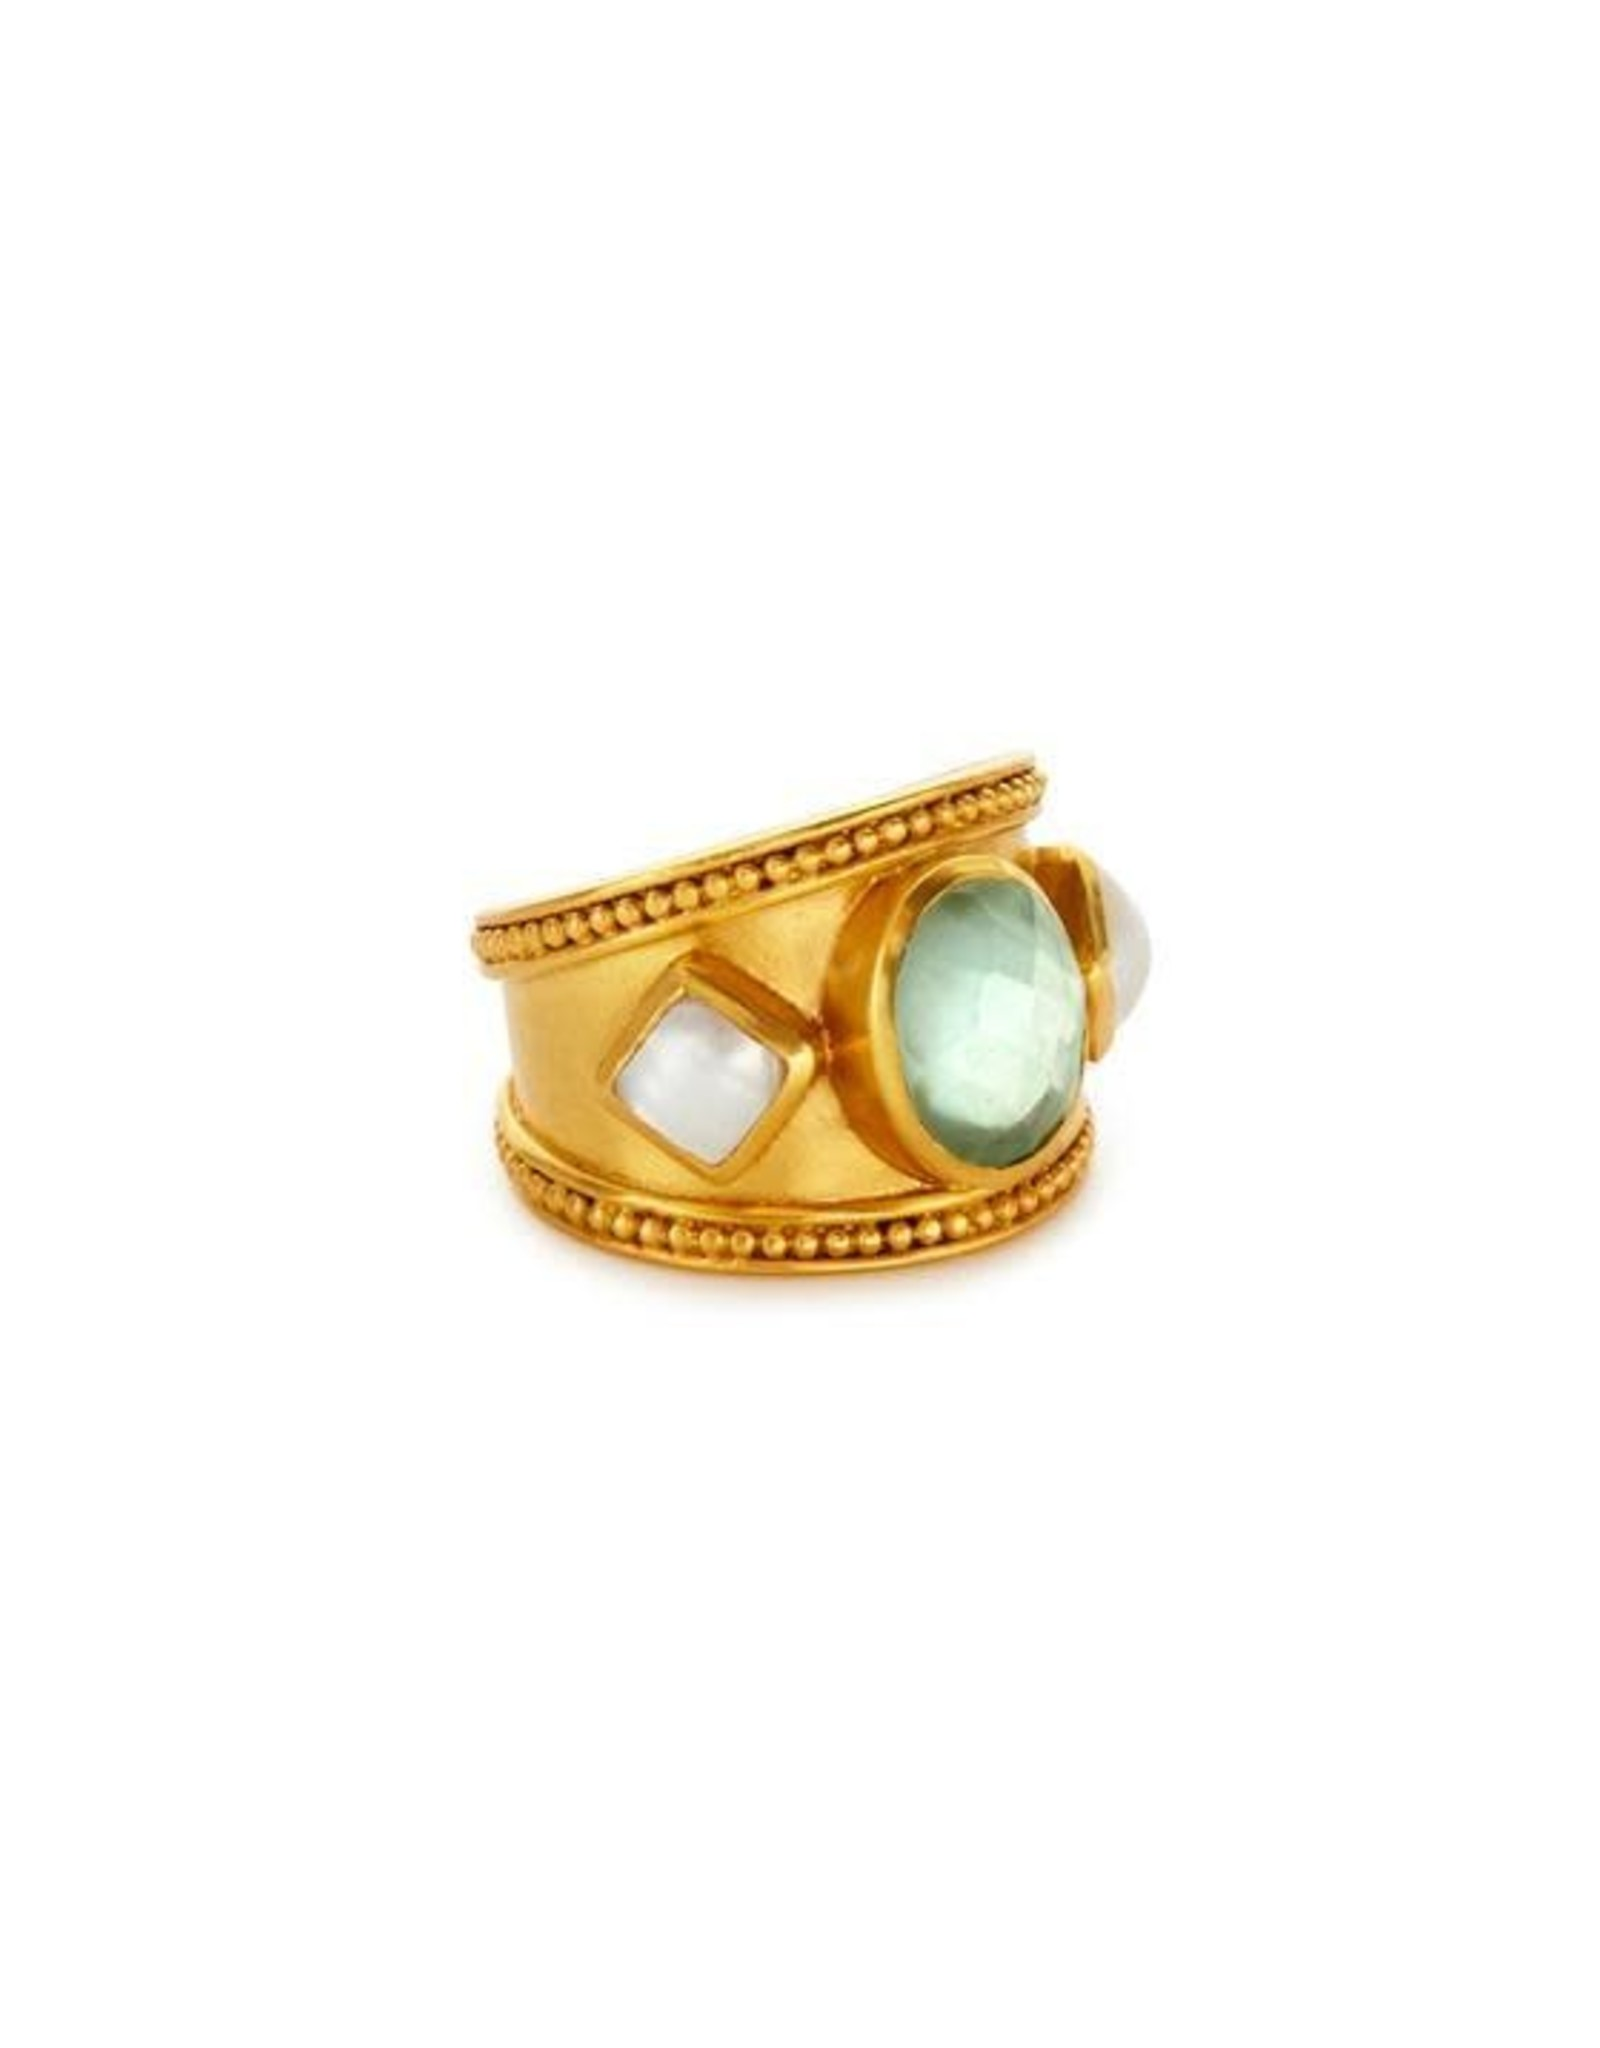 Julie Vos Loire Stone Ring Gold Iridescent Aquamarine Blue with Pearl Accents - 8/9